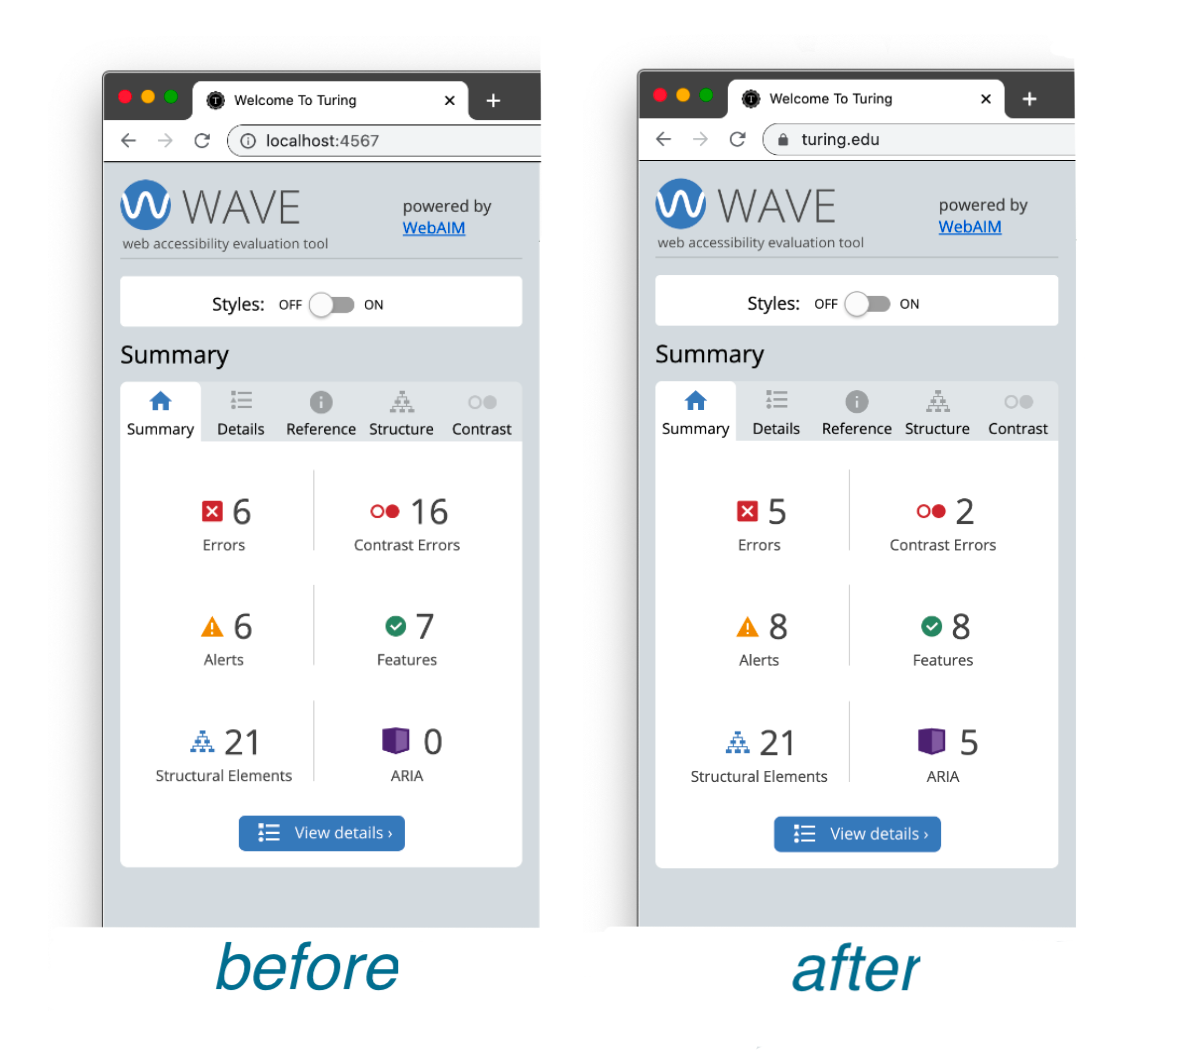 """Two browser windows, the portions of the screen showing are the results of a WAVE audit. On the left is the """"before"""" marketing site with 6 errors, 16 contrast errors, 6 alerts, 7 features, 21 structural elements and 0 ARIA. On the right is the """"after"""" marketing site with 5 errors, 2 contrast errors, 8 alerts, 8 features, 21 structural elements, and 5 ARIA."""